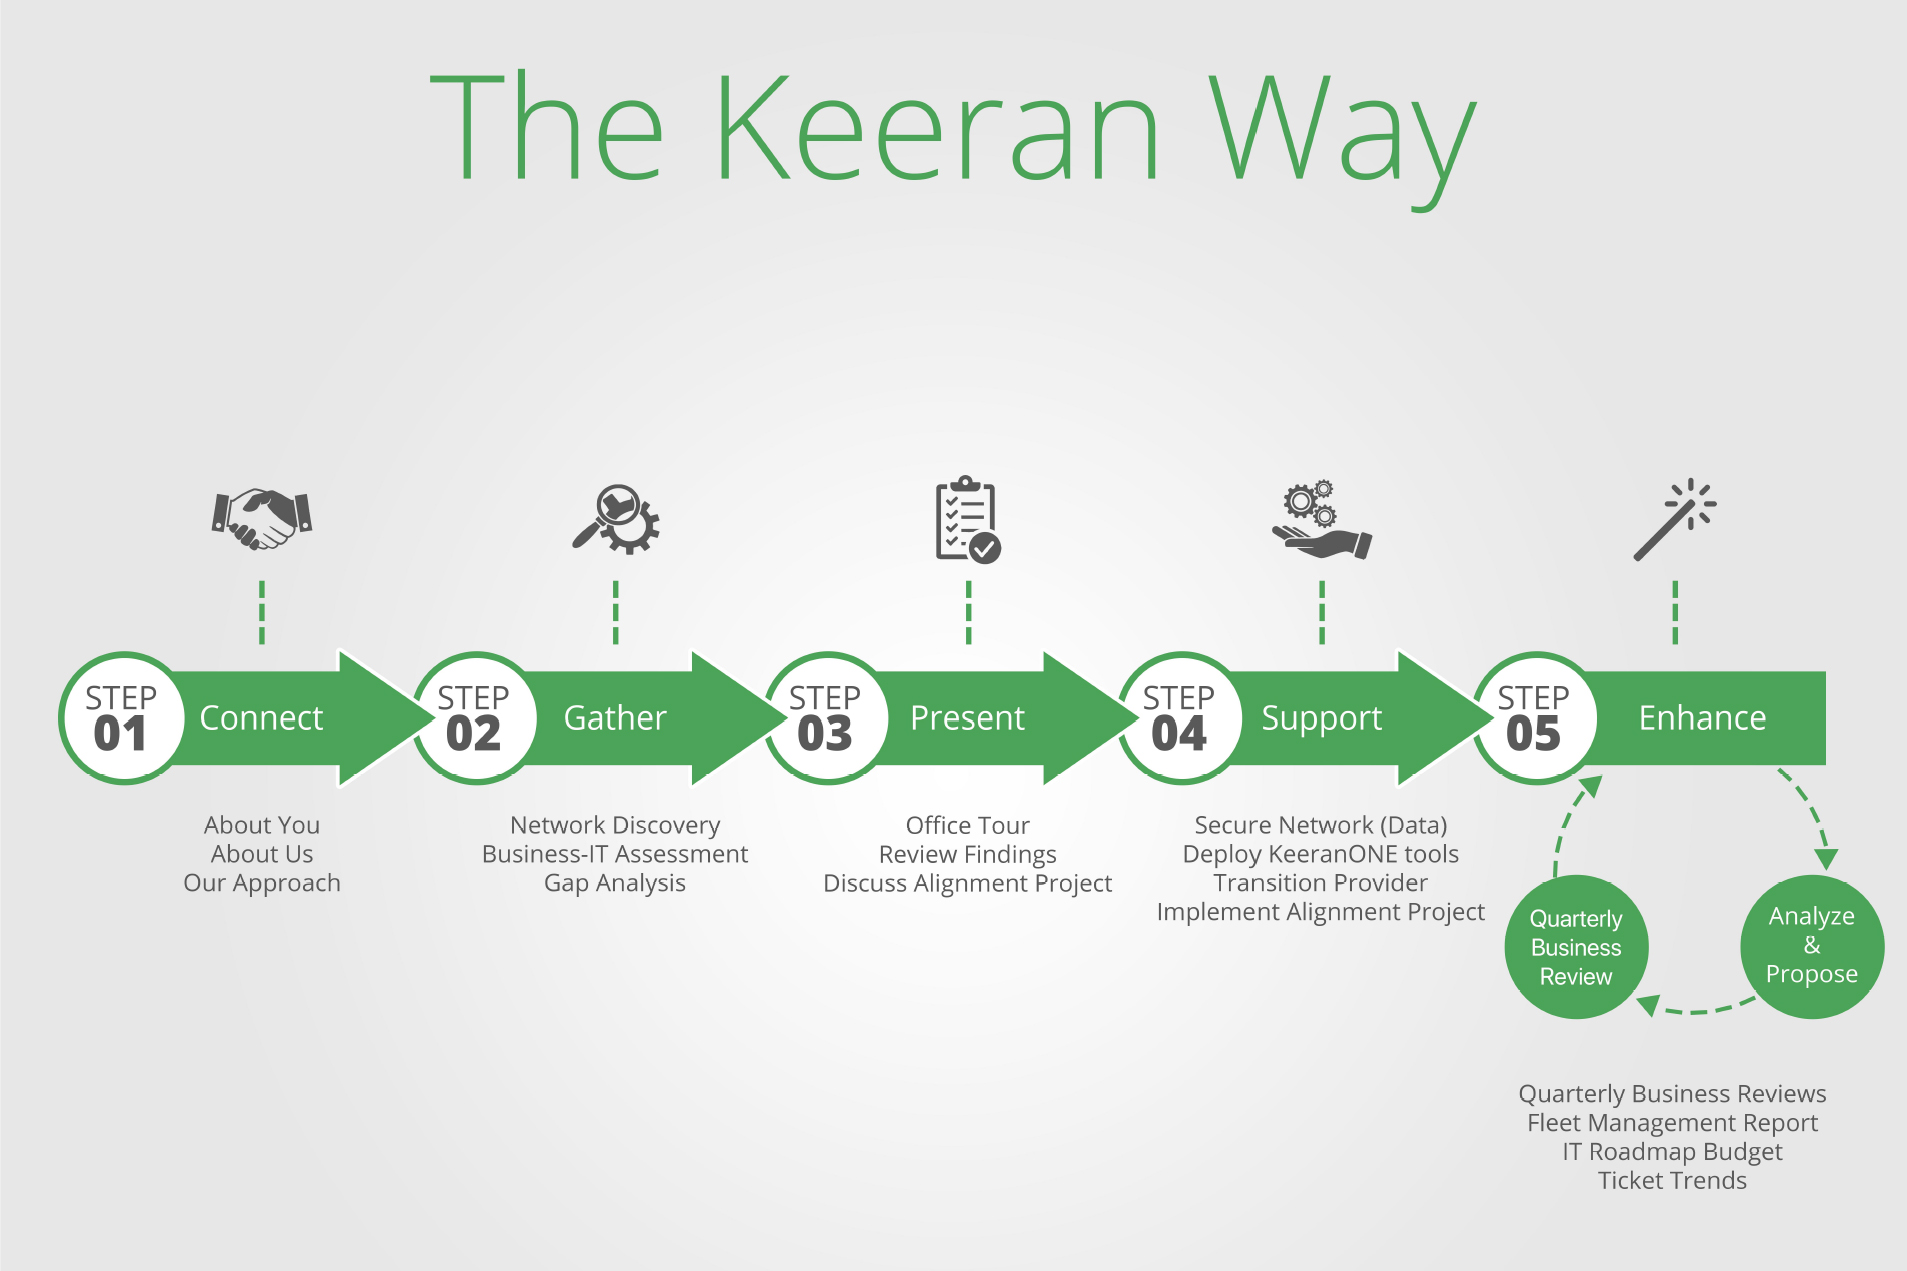 The Keeran Way